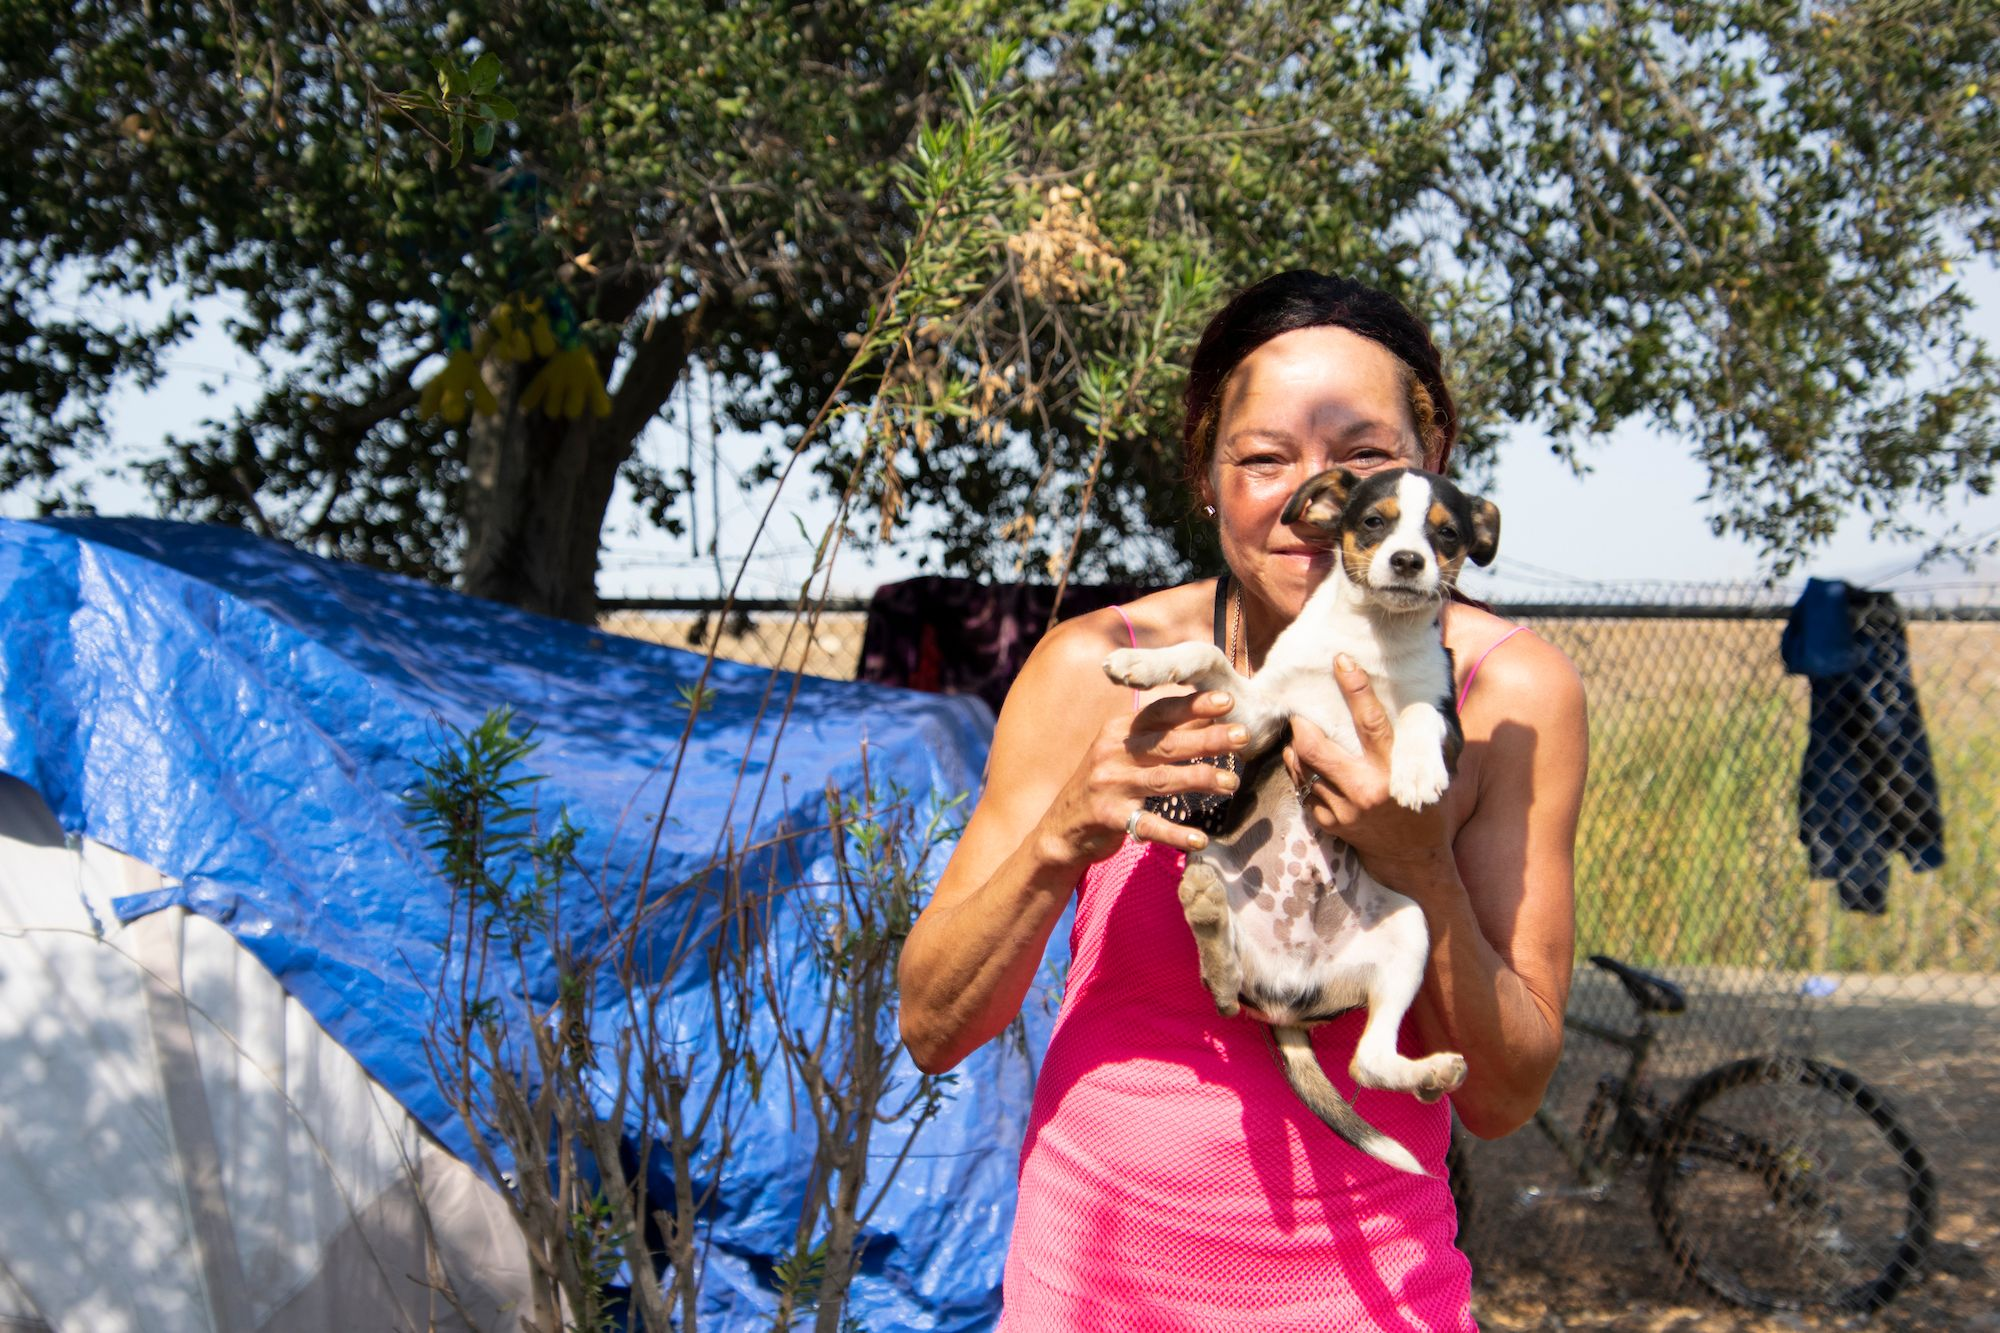 Tracy Harris, a resident of the homeless camp off Sacramento Street, holds up her dog.